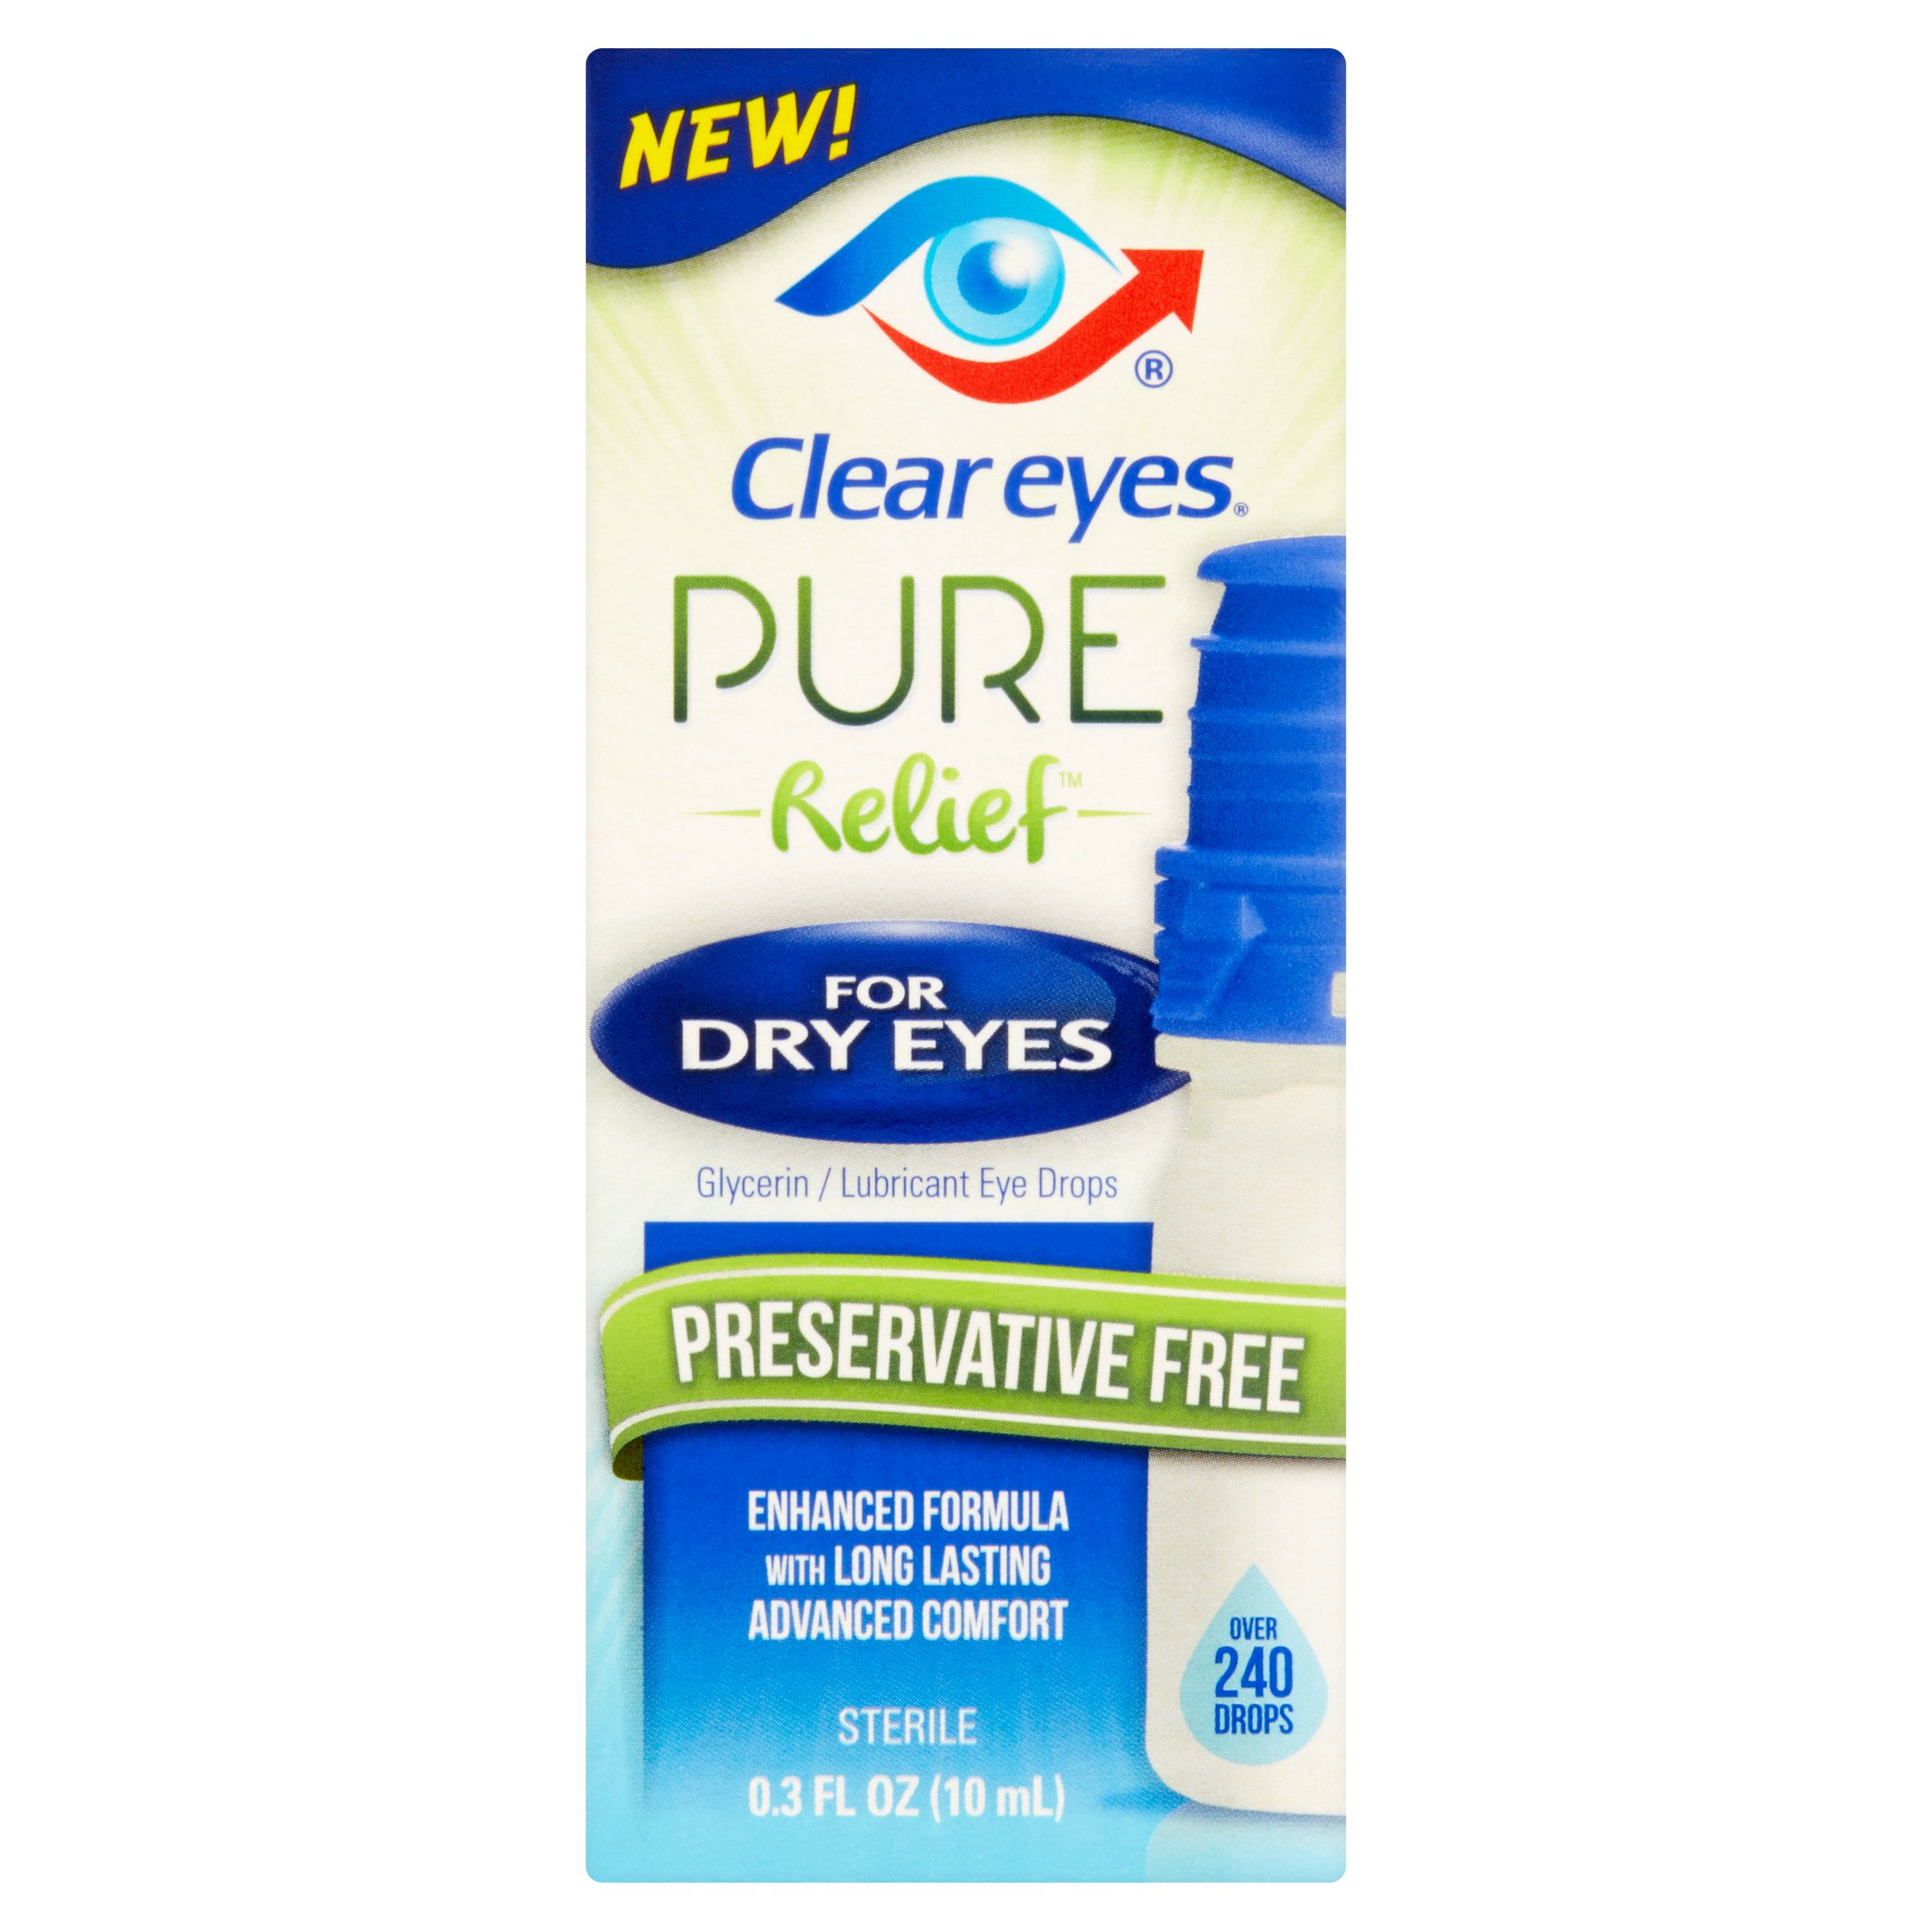 Clear Eyes Pure Relief For Dye Eyes Preserative Free Drops, 0.3 fl oz